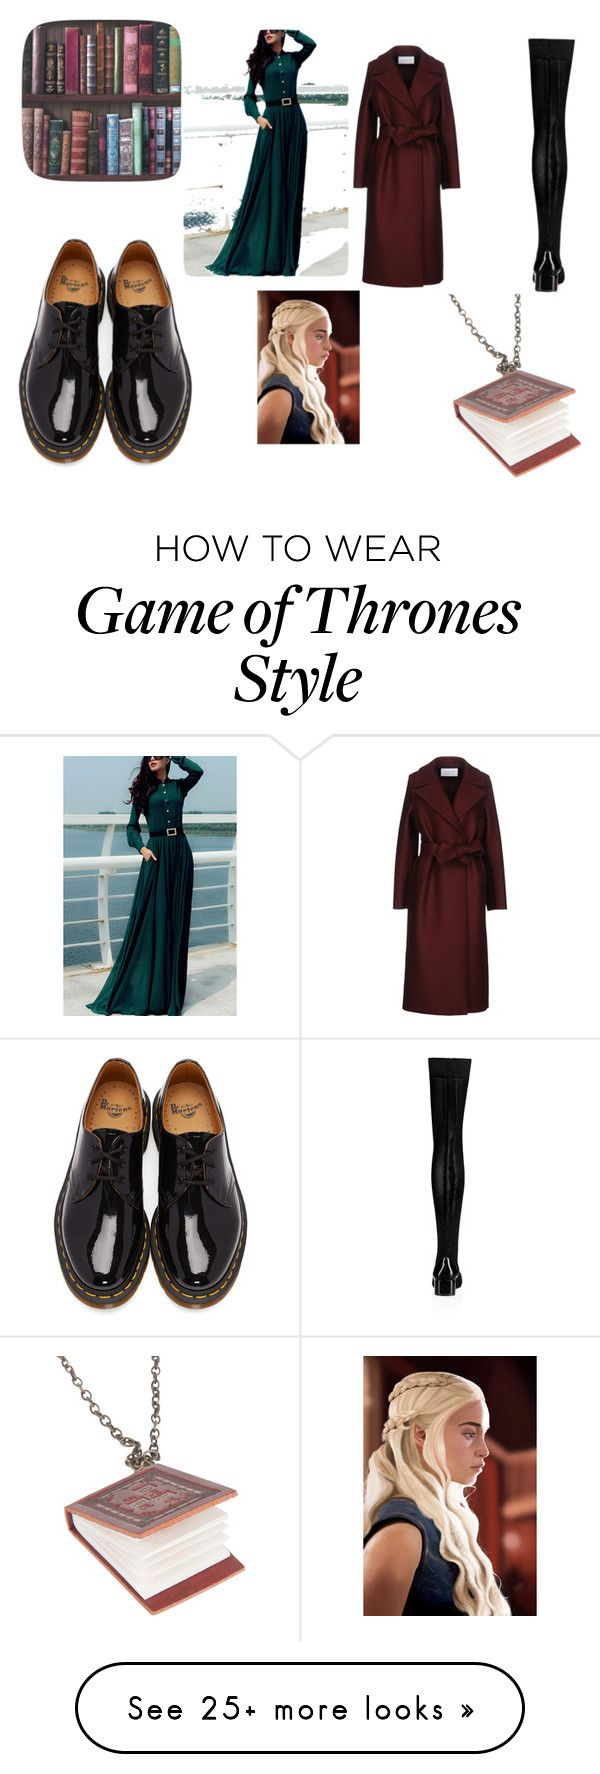 """""""Liesel Meminger"""" by natalia-santarpia on Polyvore featuring Harris Wharf London, Dr. Martens, Christian Louboutin, Graham & Brown, Disney and thebookthief"""